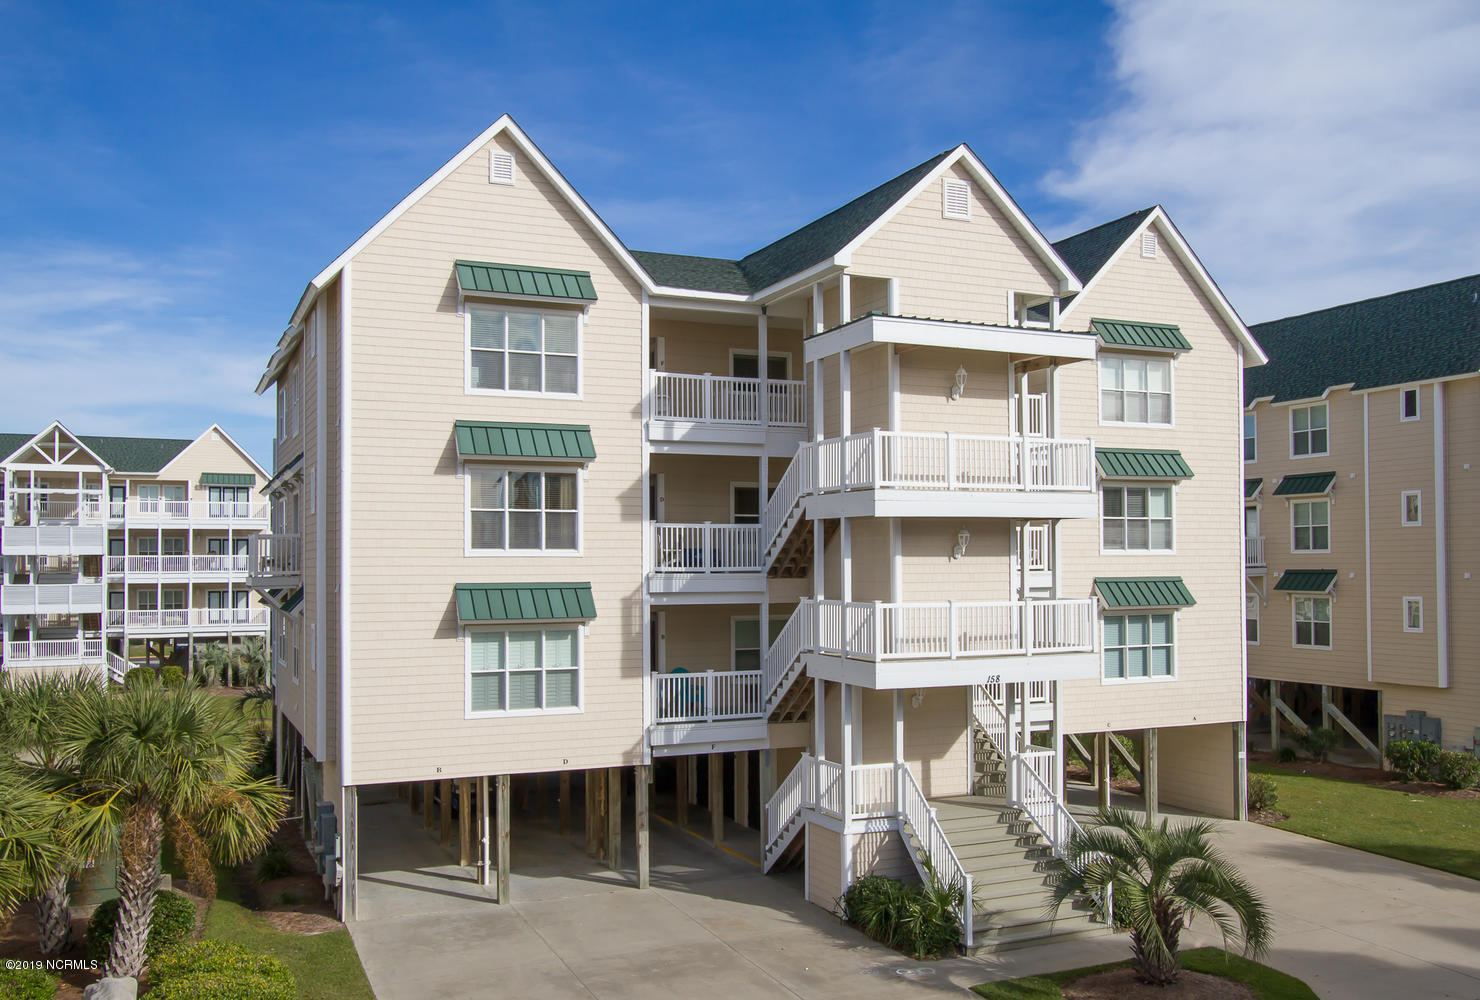 158 D Via Old Sound Boulevard Ocean Isle Beach, NC 28469